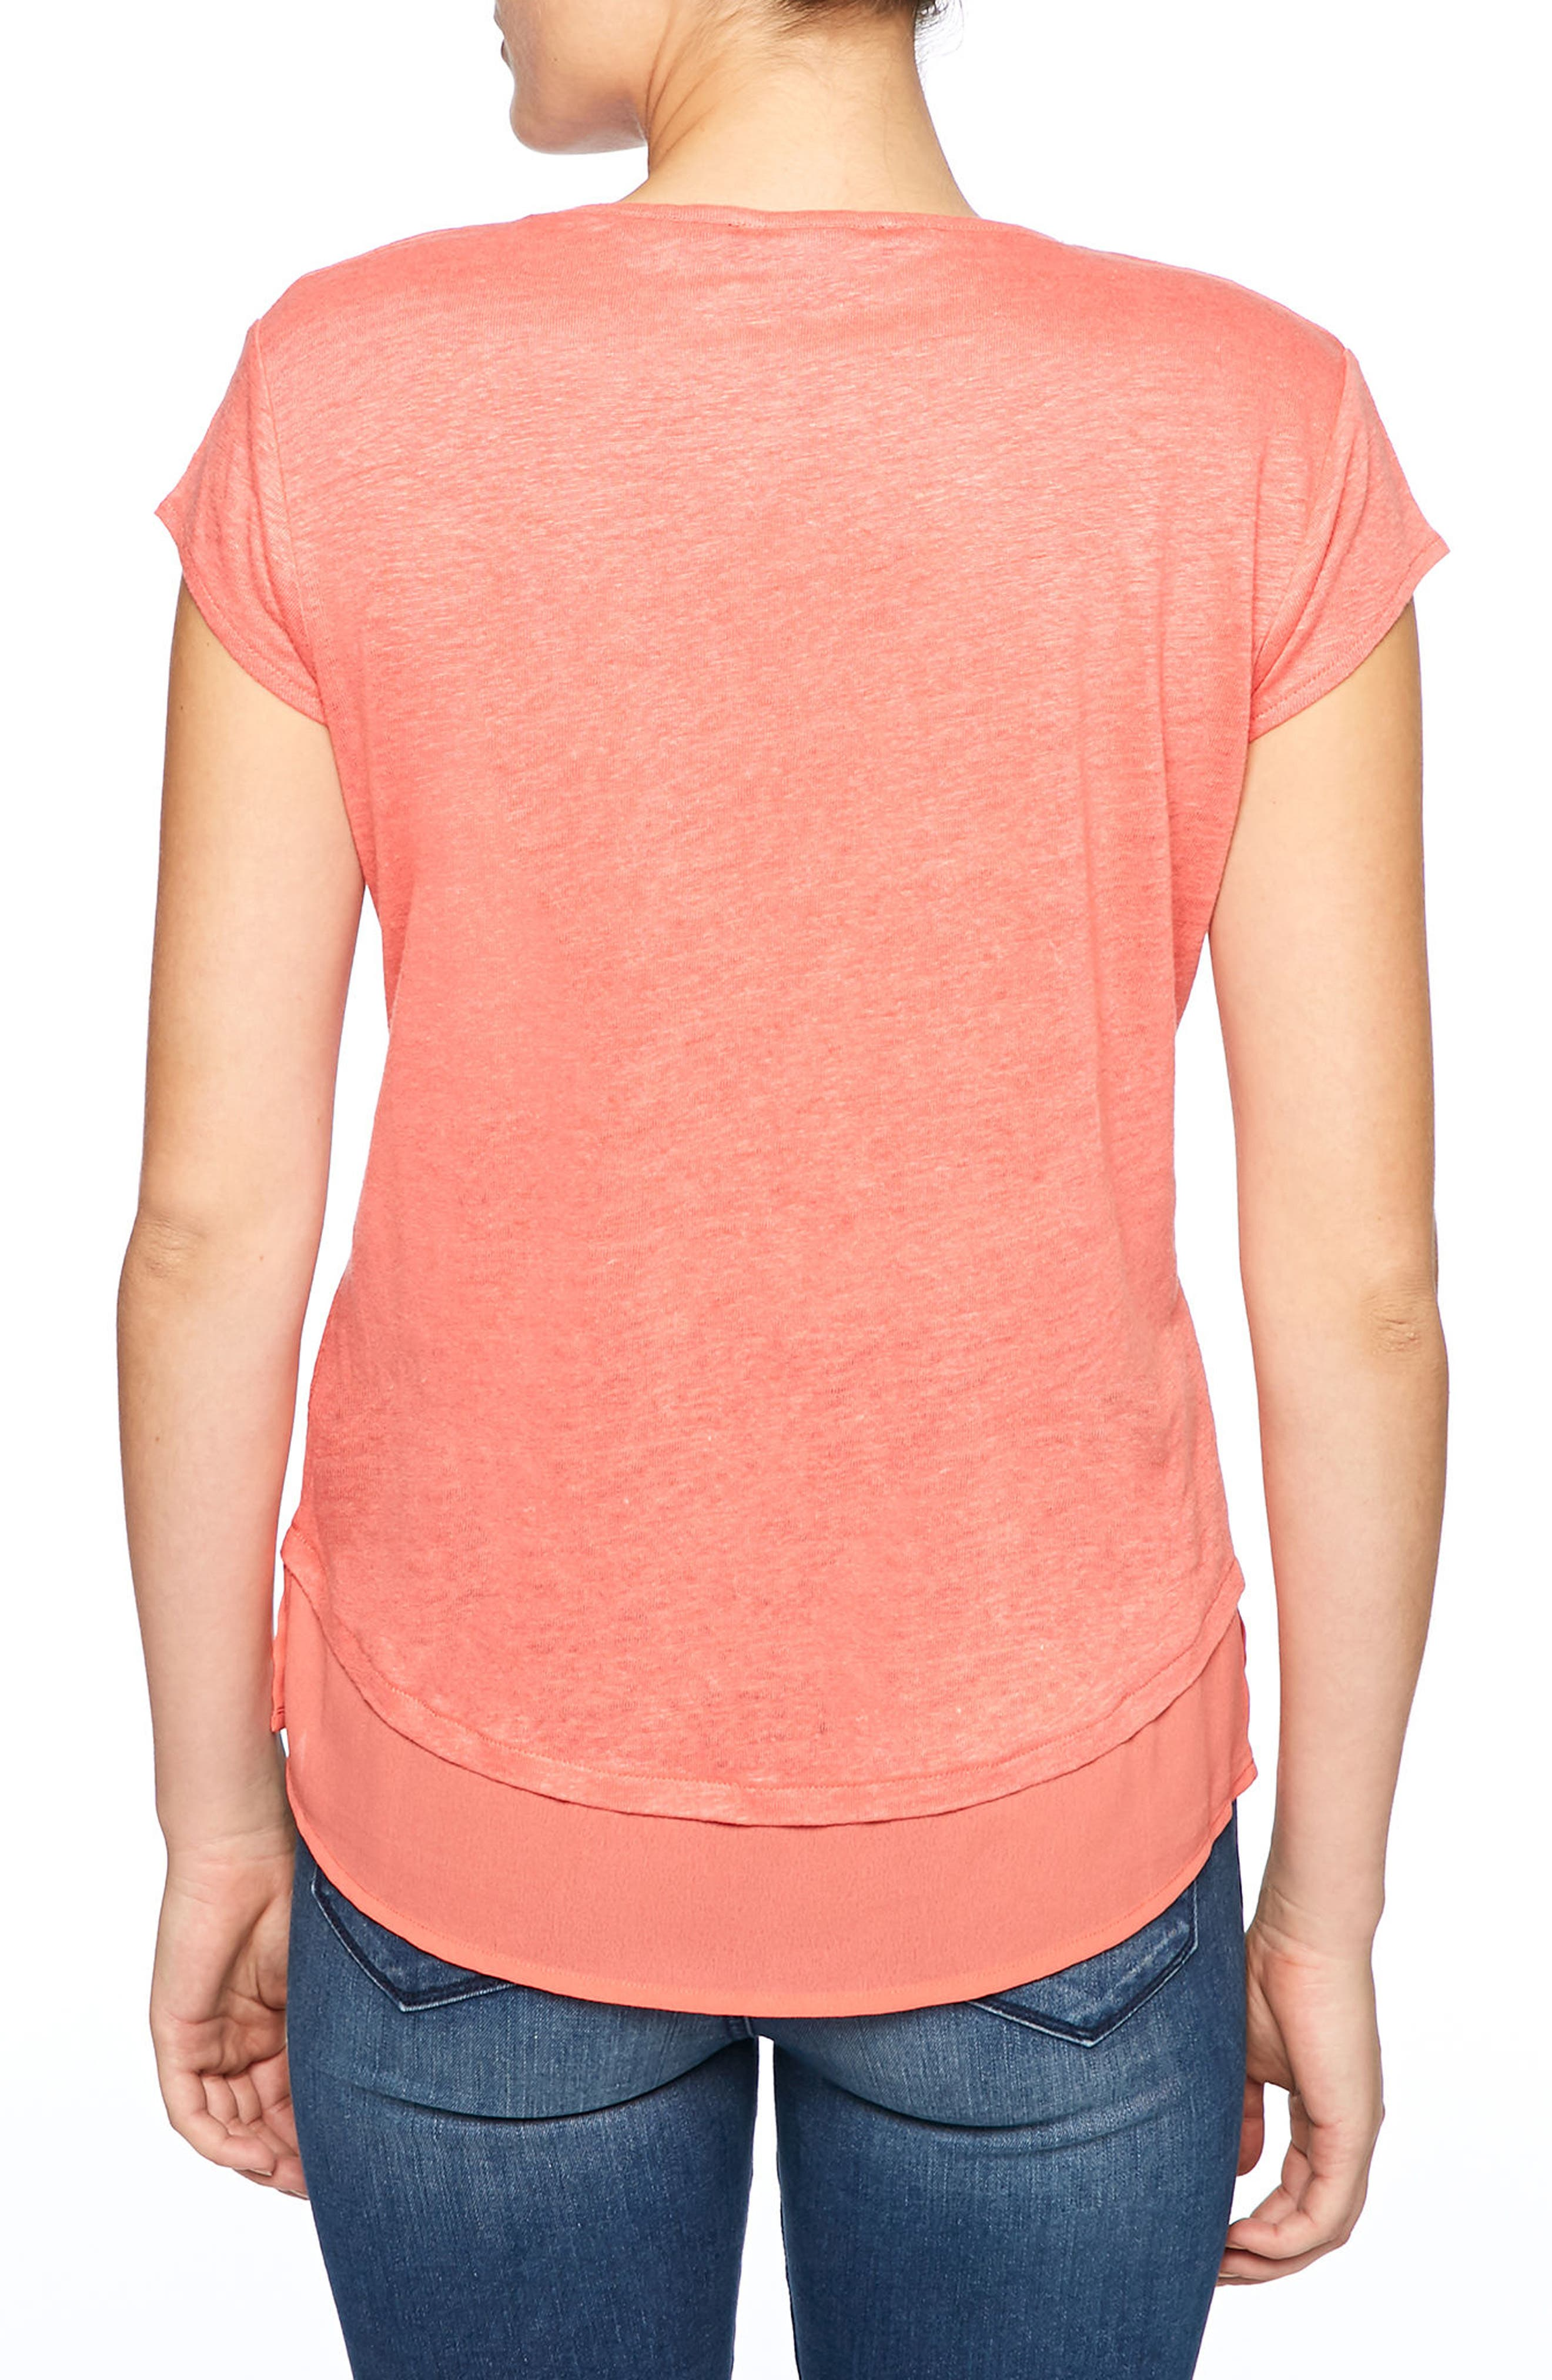 City Mix Layered Look Tee,                             Alternate thumbnail 50, color,